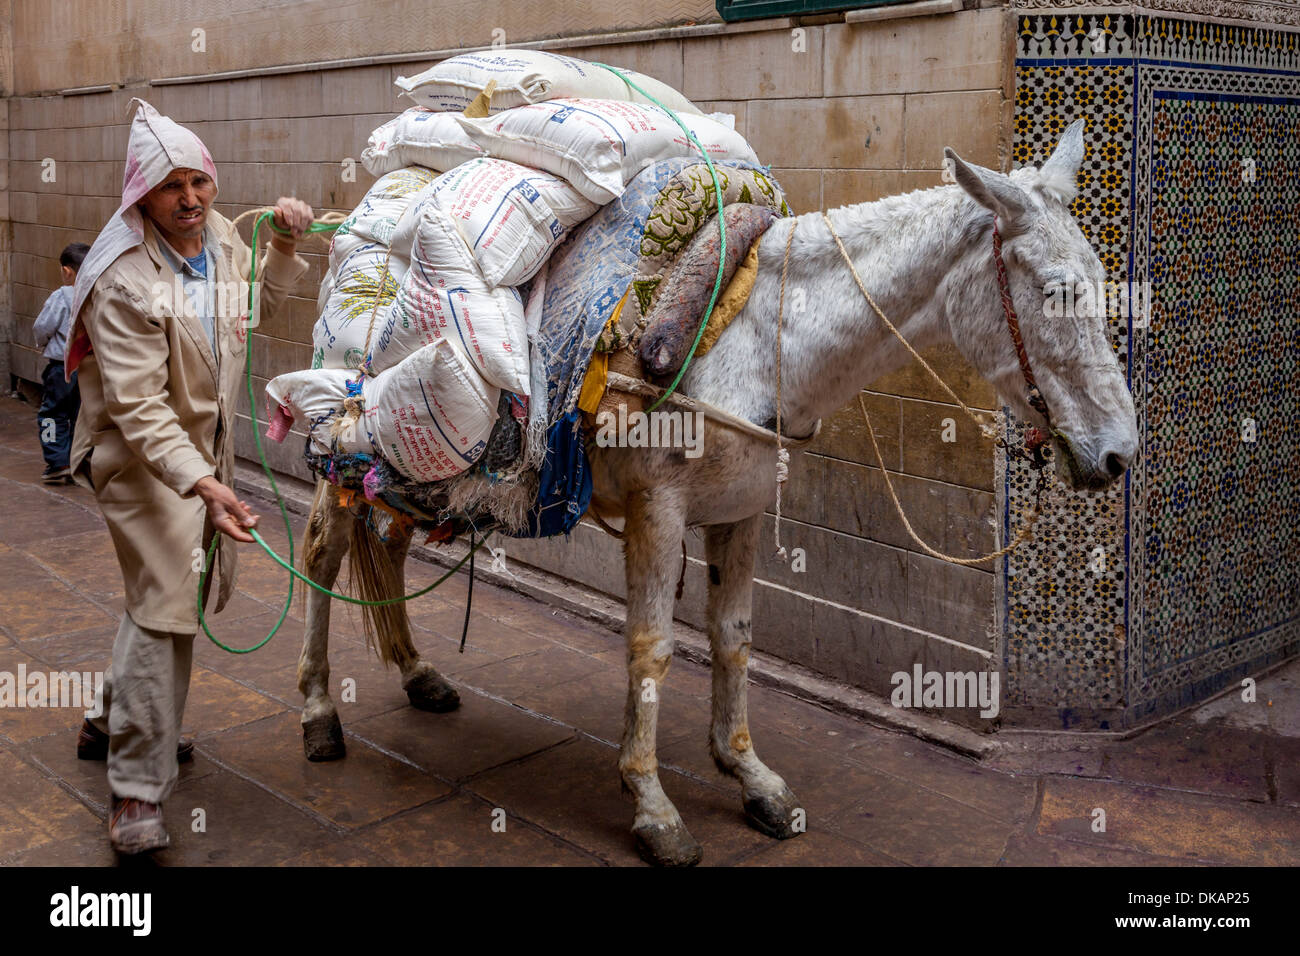 Street Scene in The Medina (Old City), Fez, Morocco - Stock Image